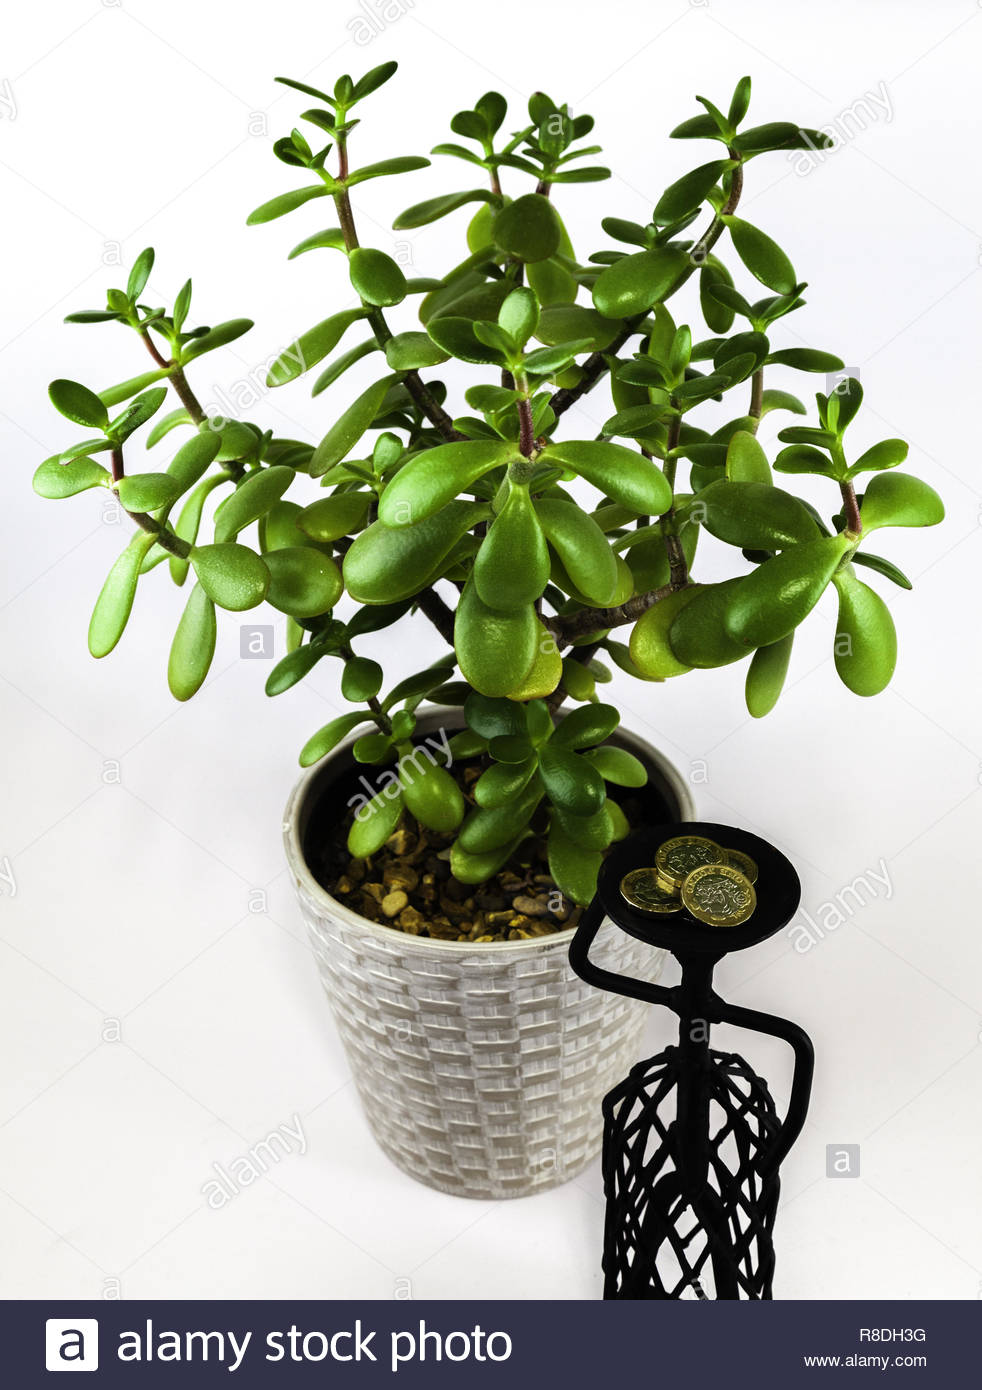 Jade plant Crassula portulaca (money tree) next to a metal female figure carrying pound (GB£) coins on her head. Concept: the value of women's labour - Stock Image